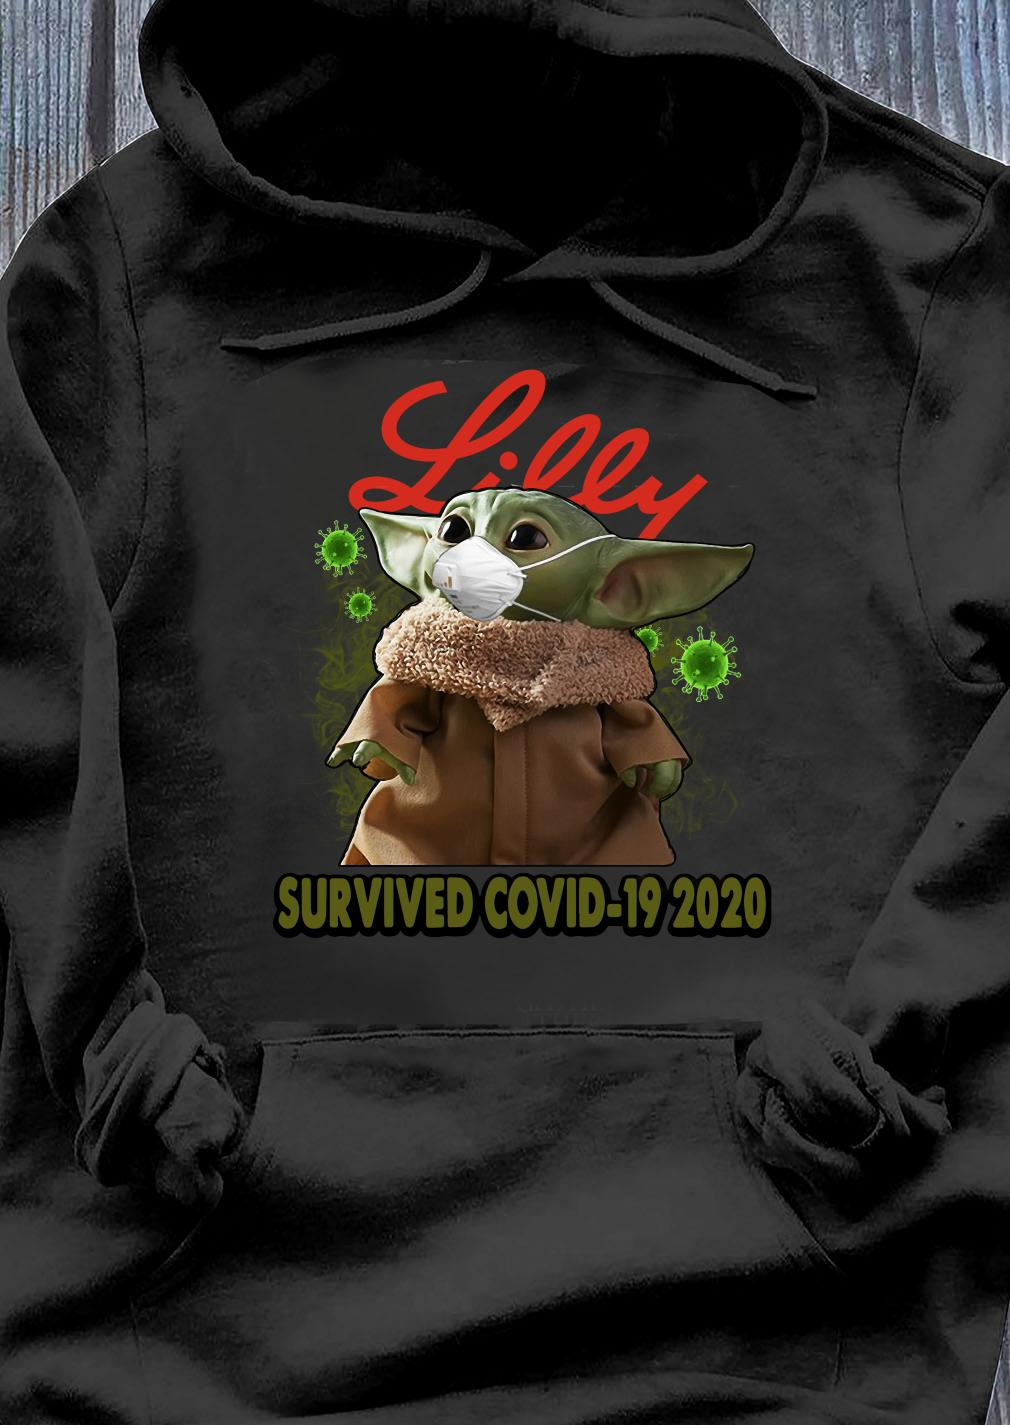 Baby Yoda Lilly Survived Covid 19 2020 Shirt Hoodie